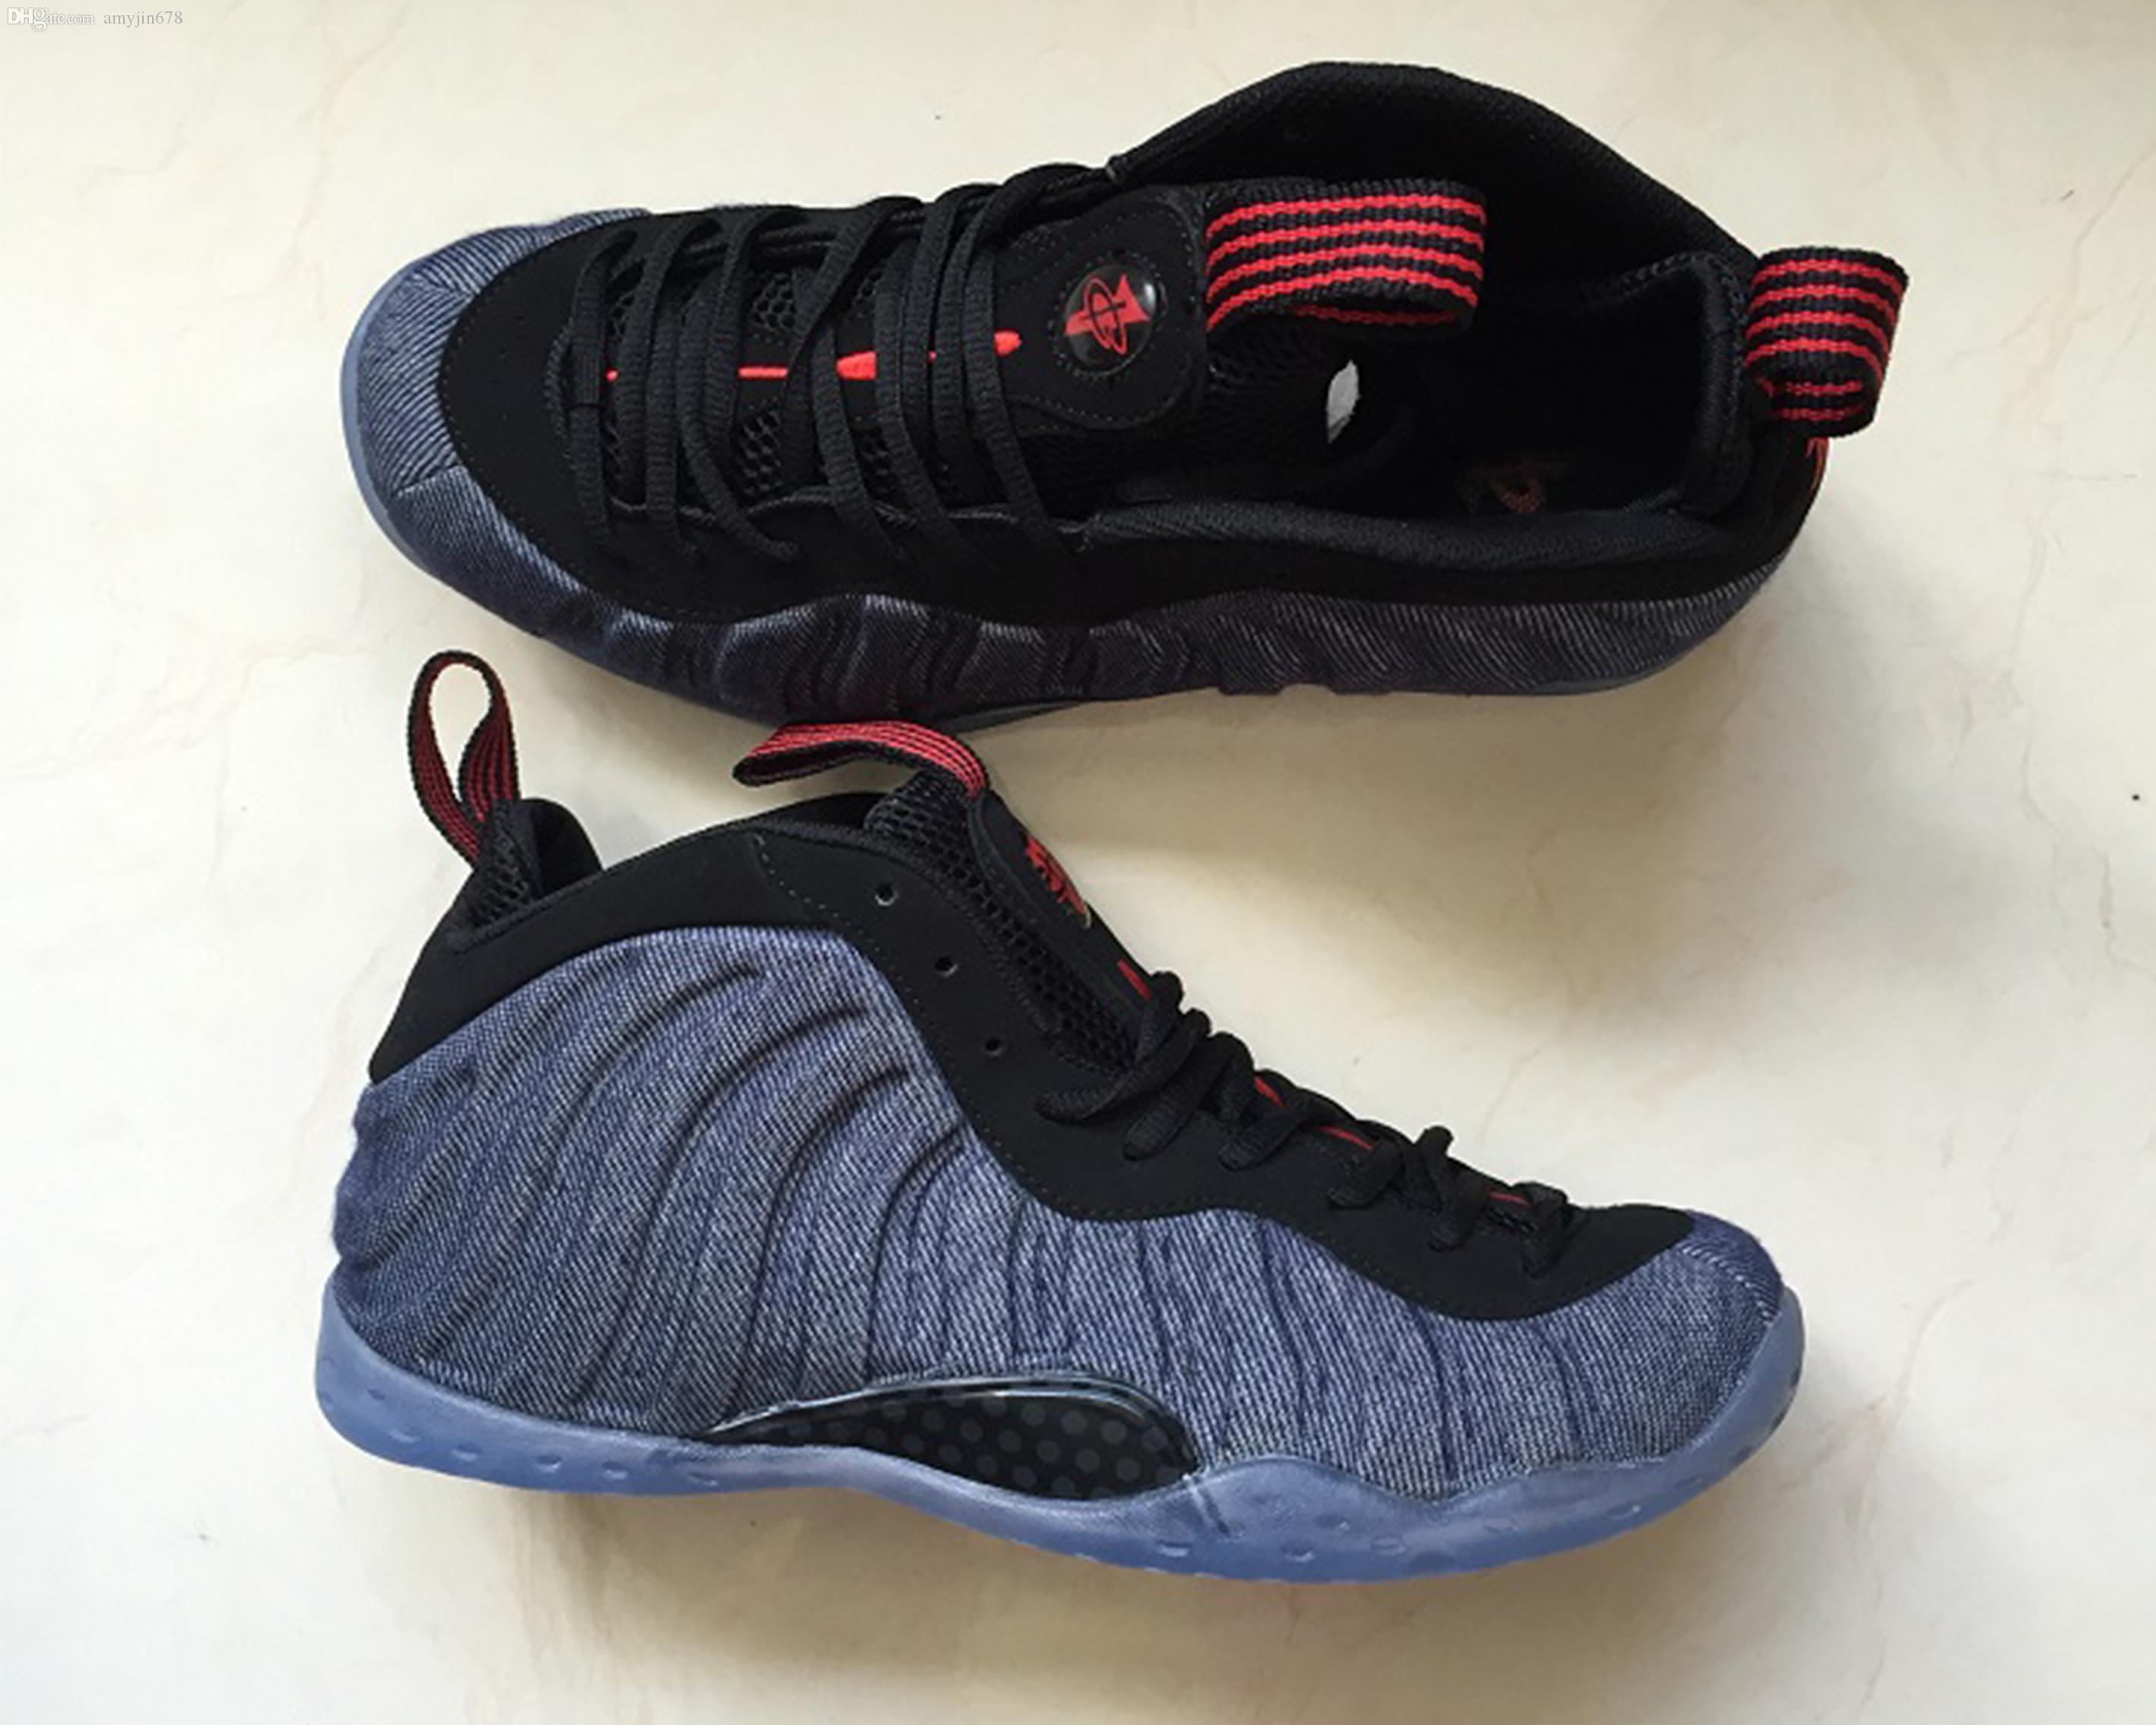 7284e85cabf 2019 New Penny Hardaway Foams Men Shoes AAA+Quality Blue Denim Hardaway  Designer Foam One Mens Fashion Casual Shoes 40 47 Wholesale Shoes Cool  Shoes From ...